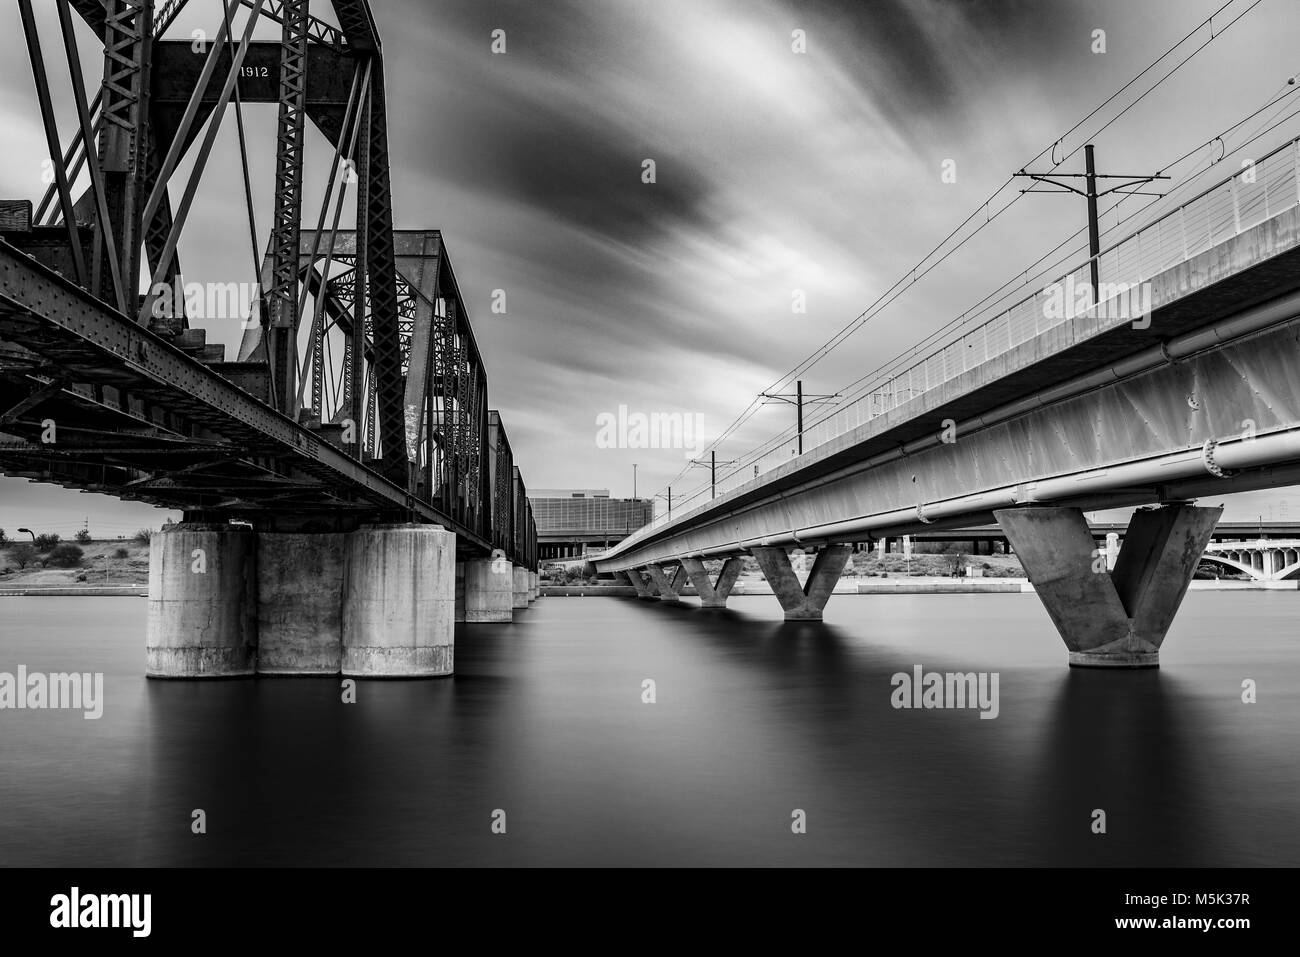 A wonderful moody day in Arizona. It was the perfect cloudy day for some long exposure photography at Tempe Town - Stock Image